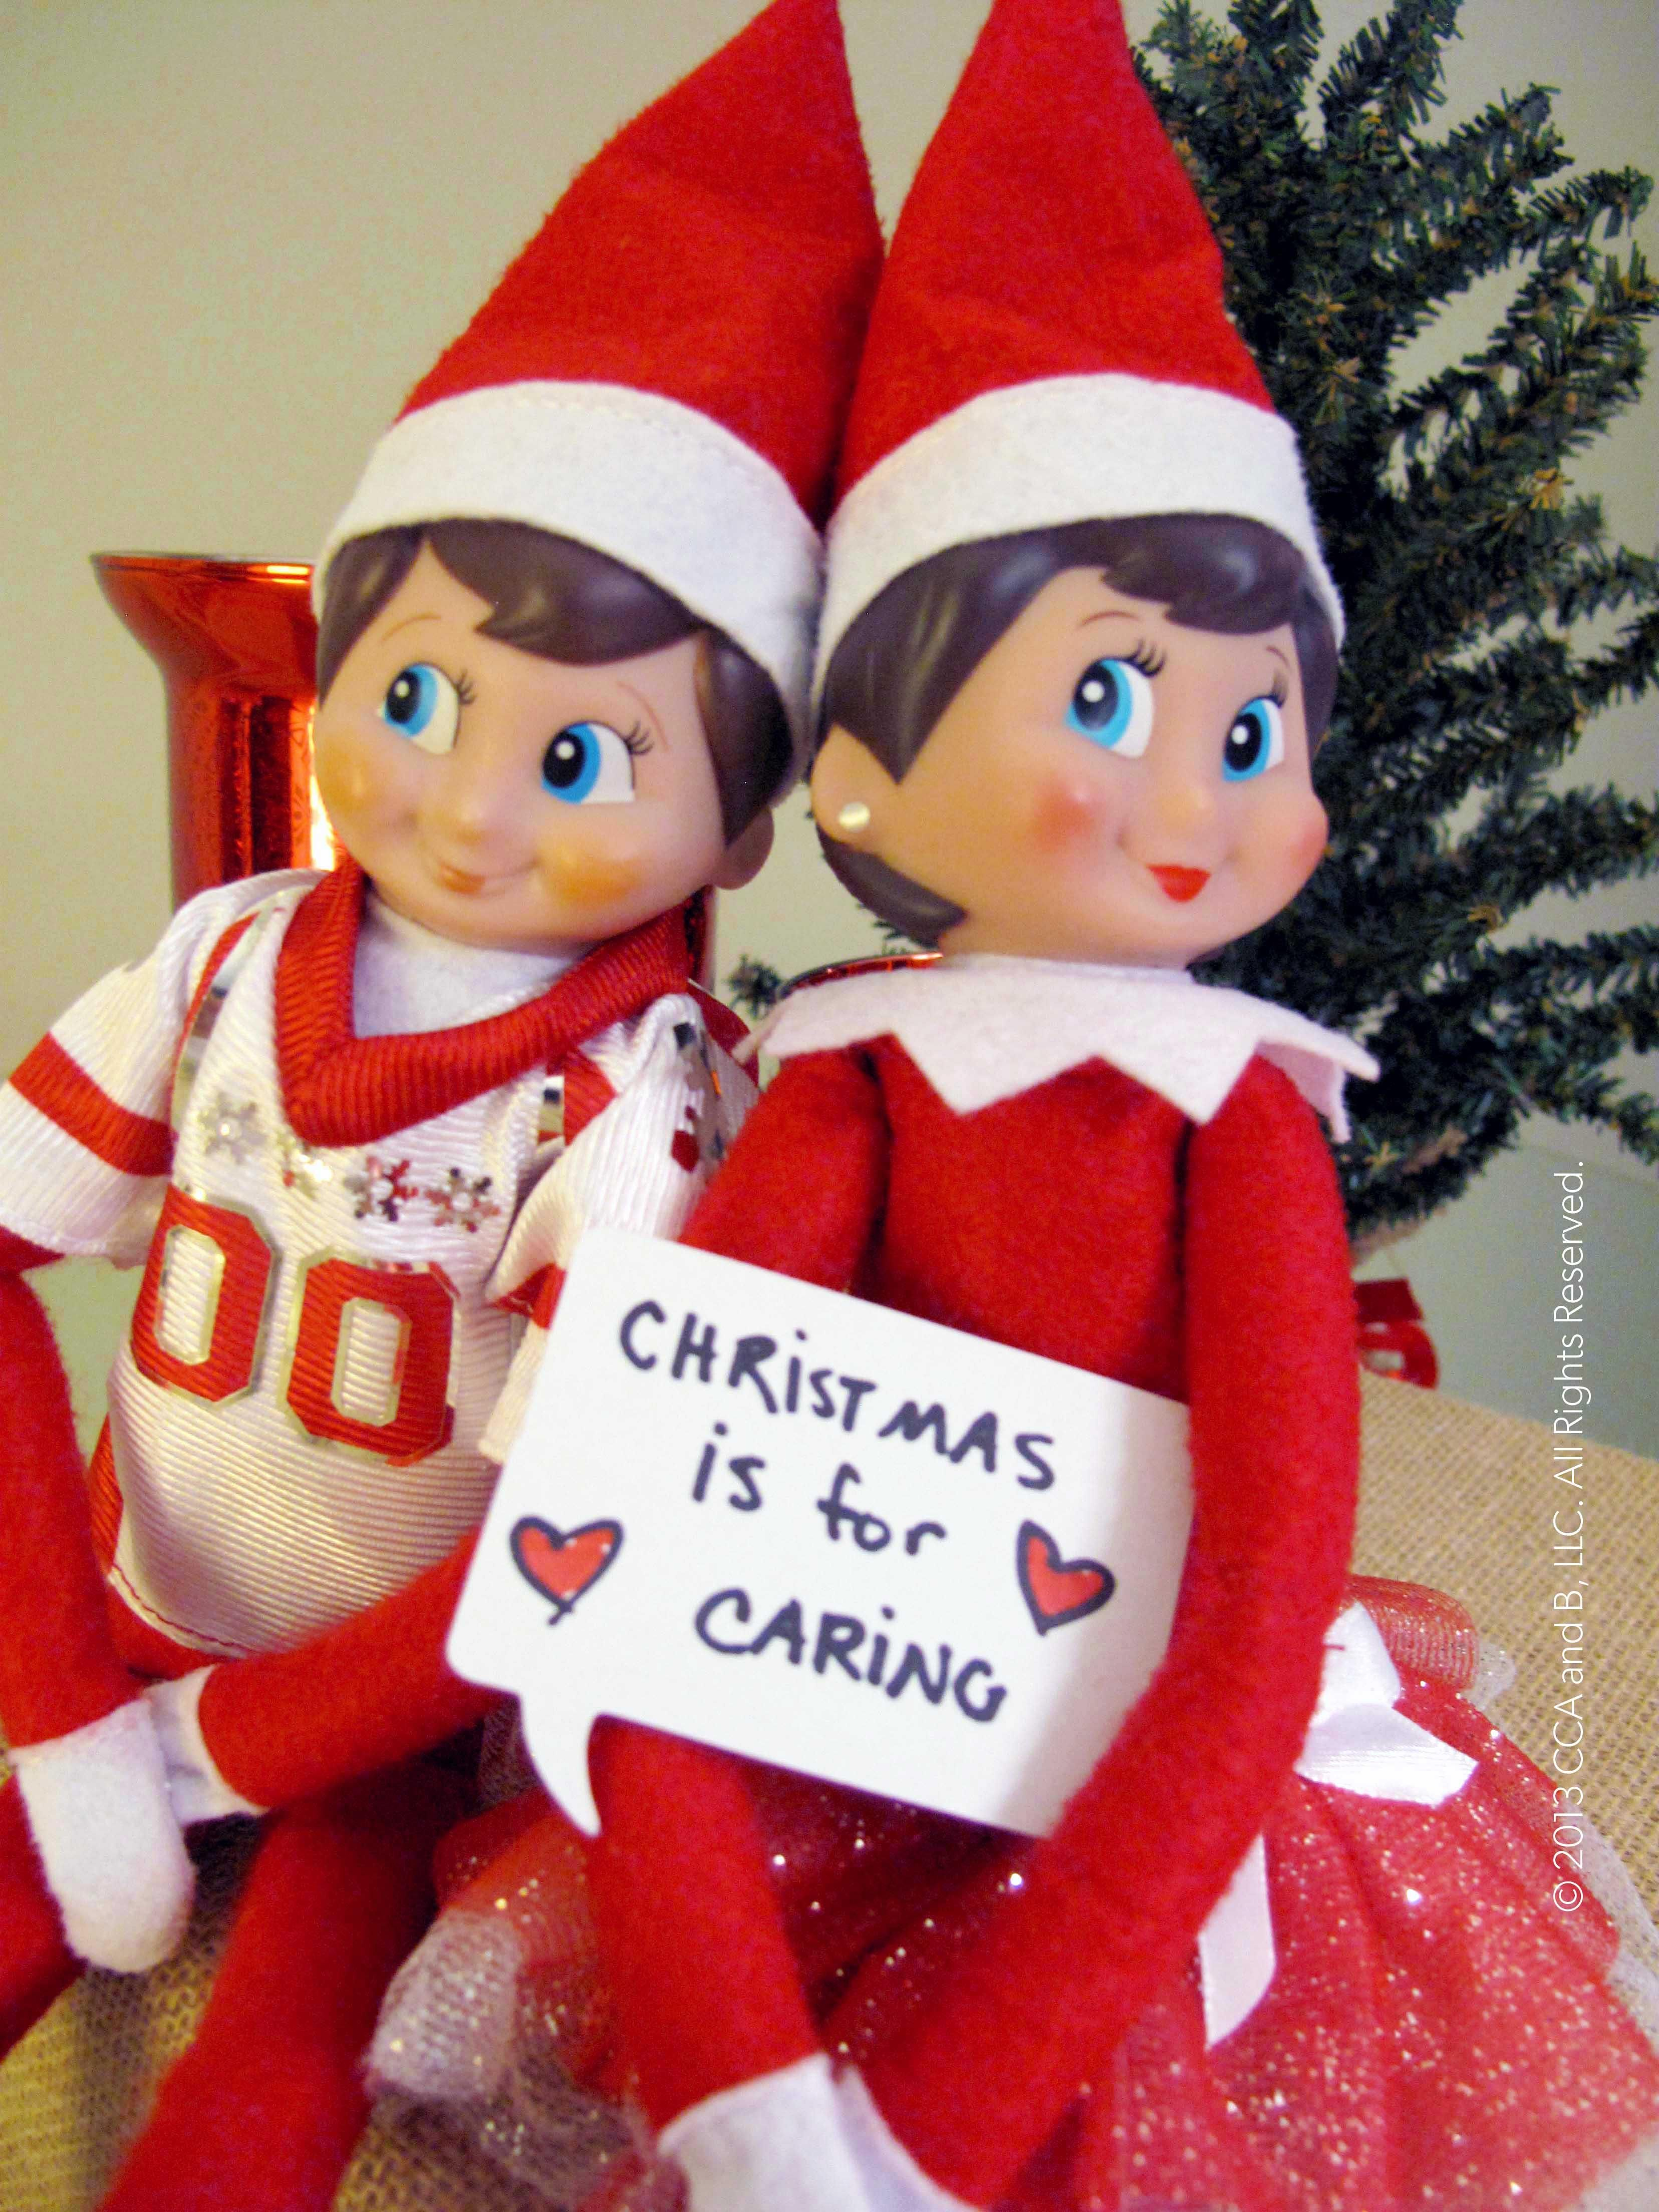 Christmas Care (With images) Elf on the shelf, Elf